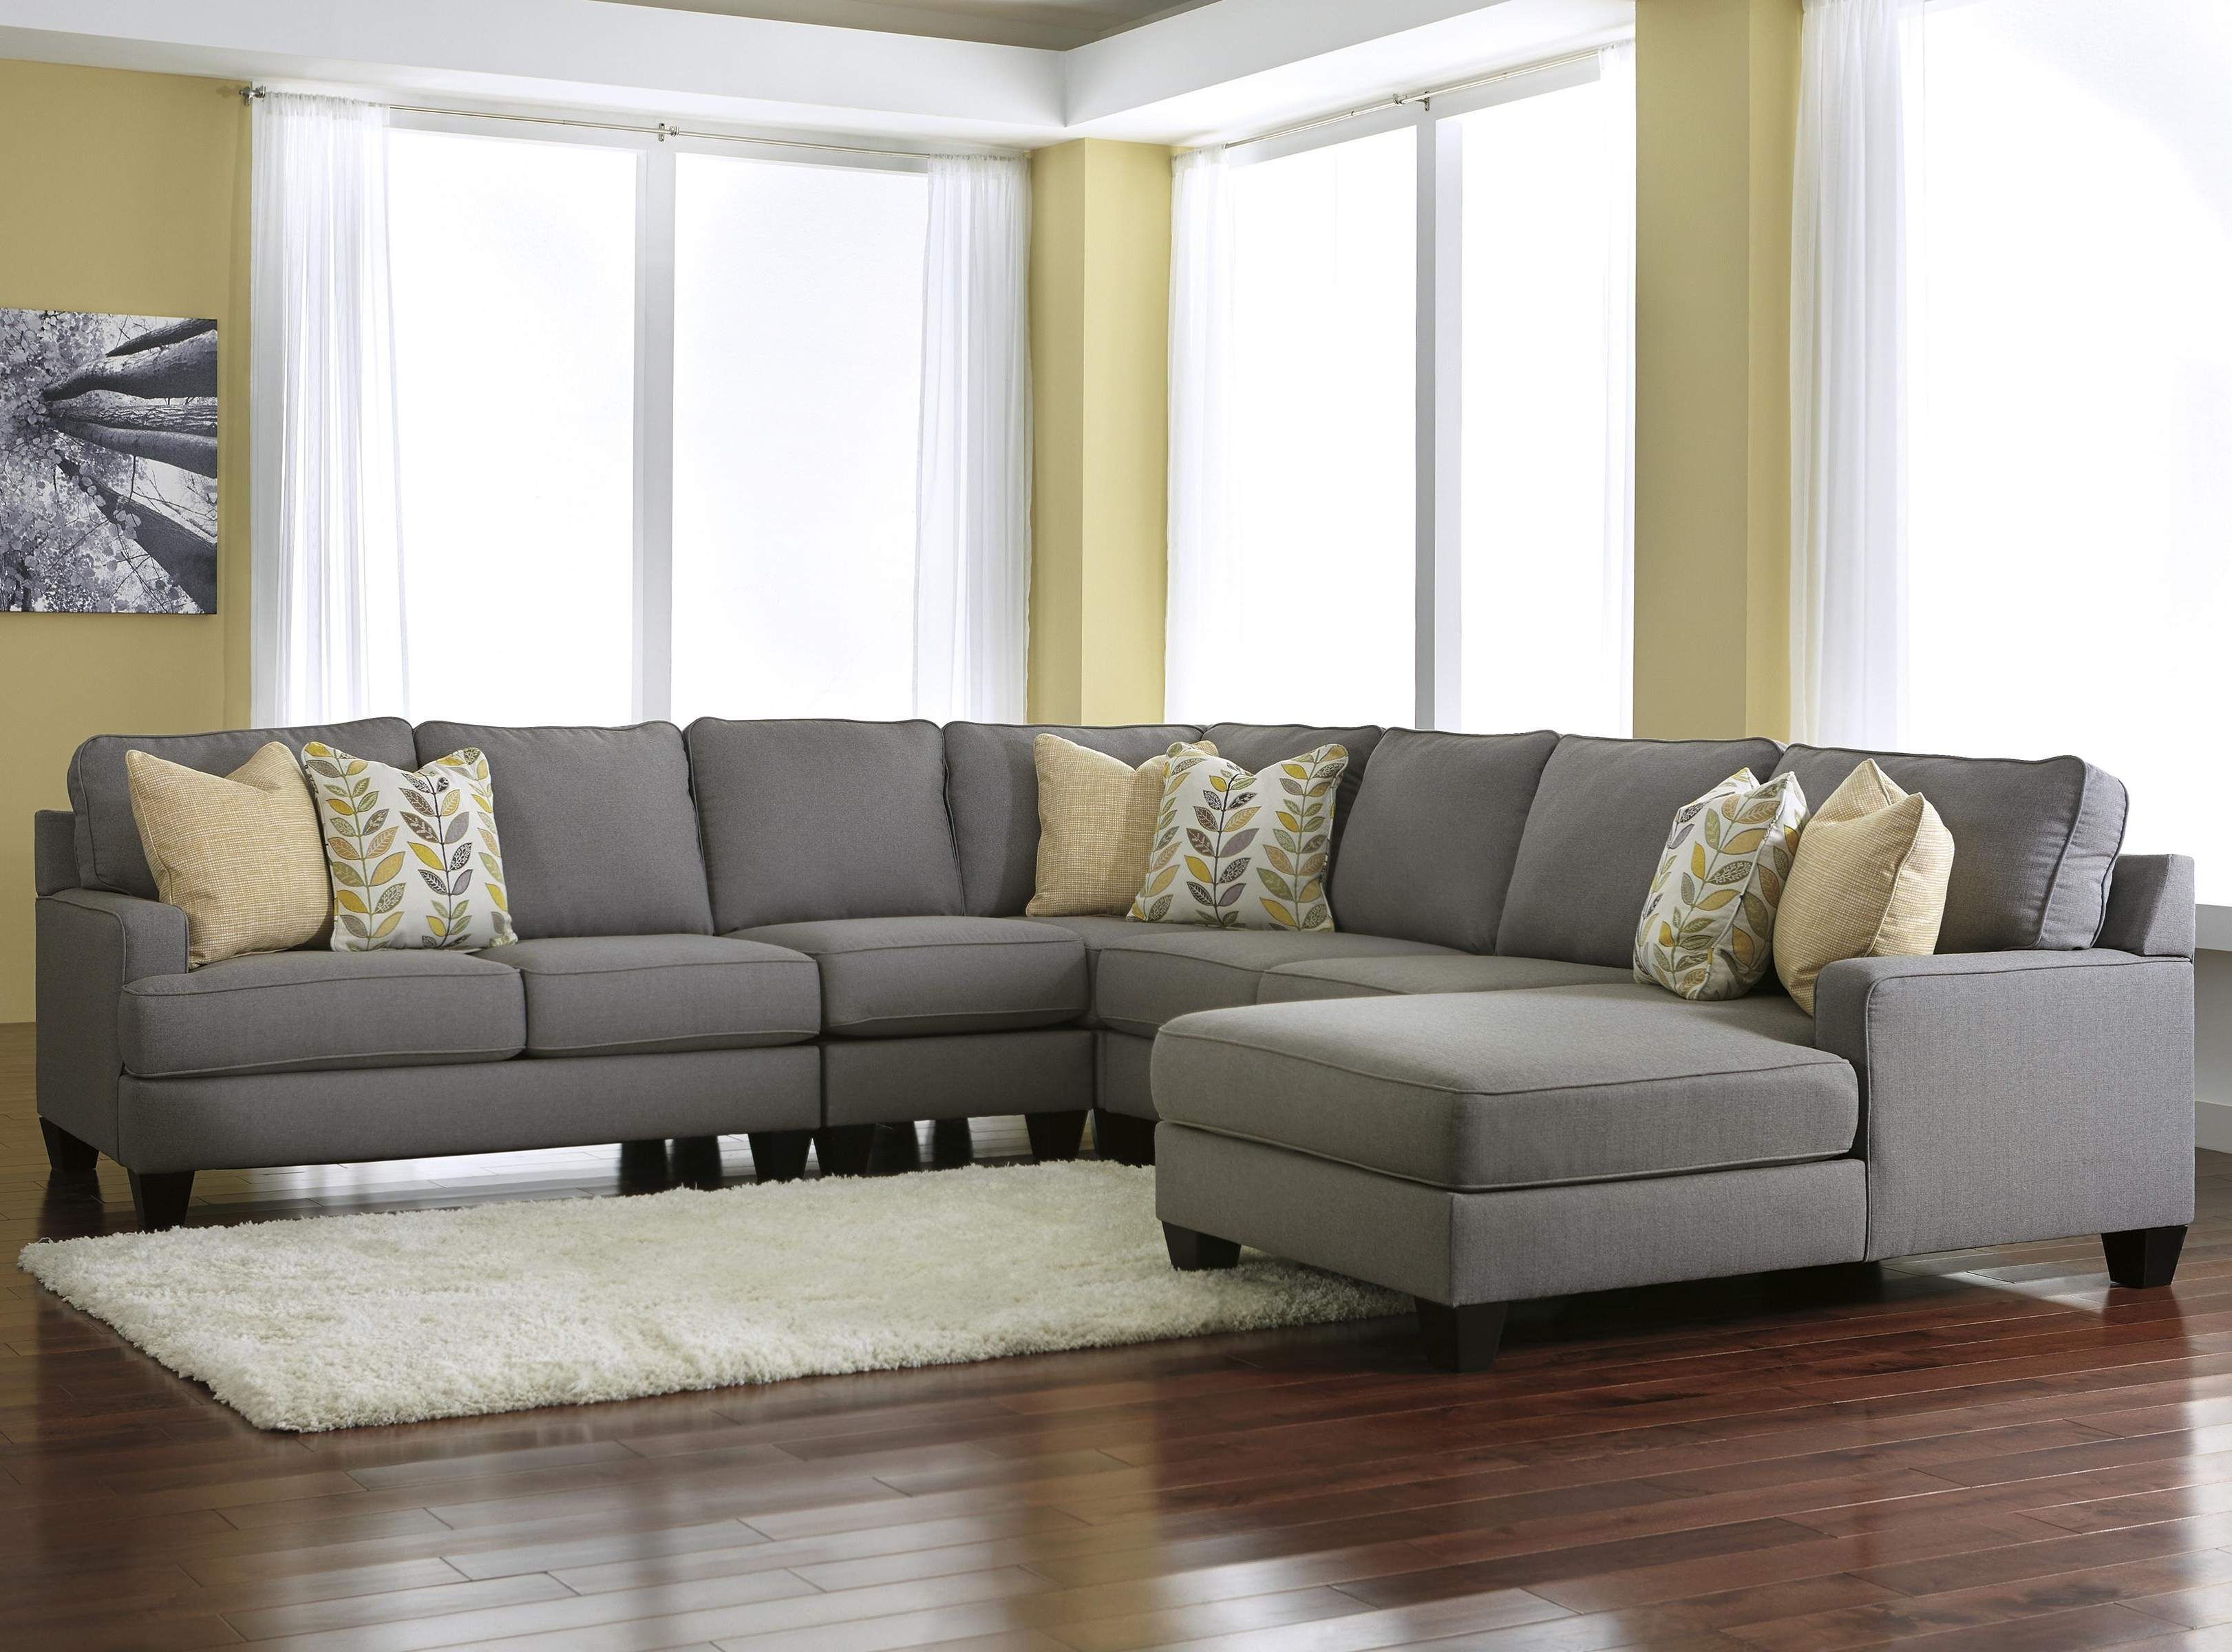 Signature Designashley Chamberly – Alloy Modern 5 Piece Throughout Most Popular Clarksville Tn Sectional Sofas (View 8 of 15)